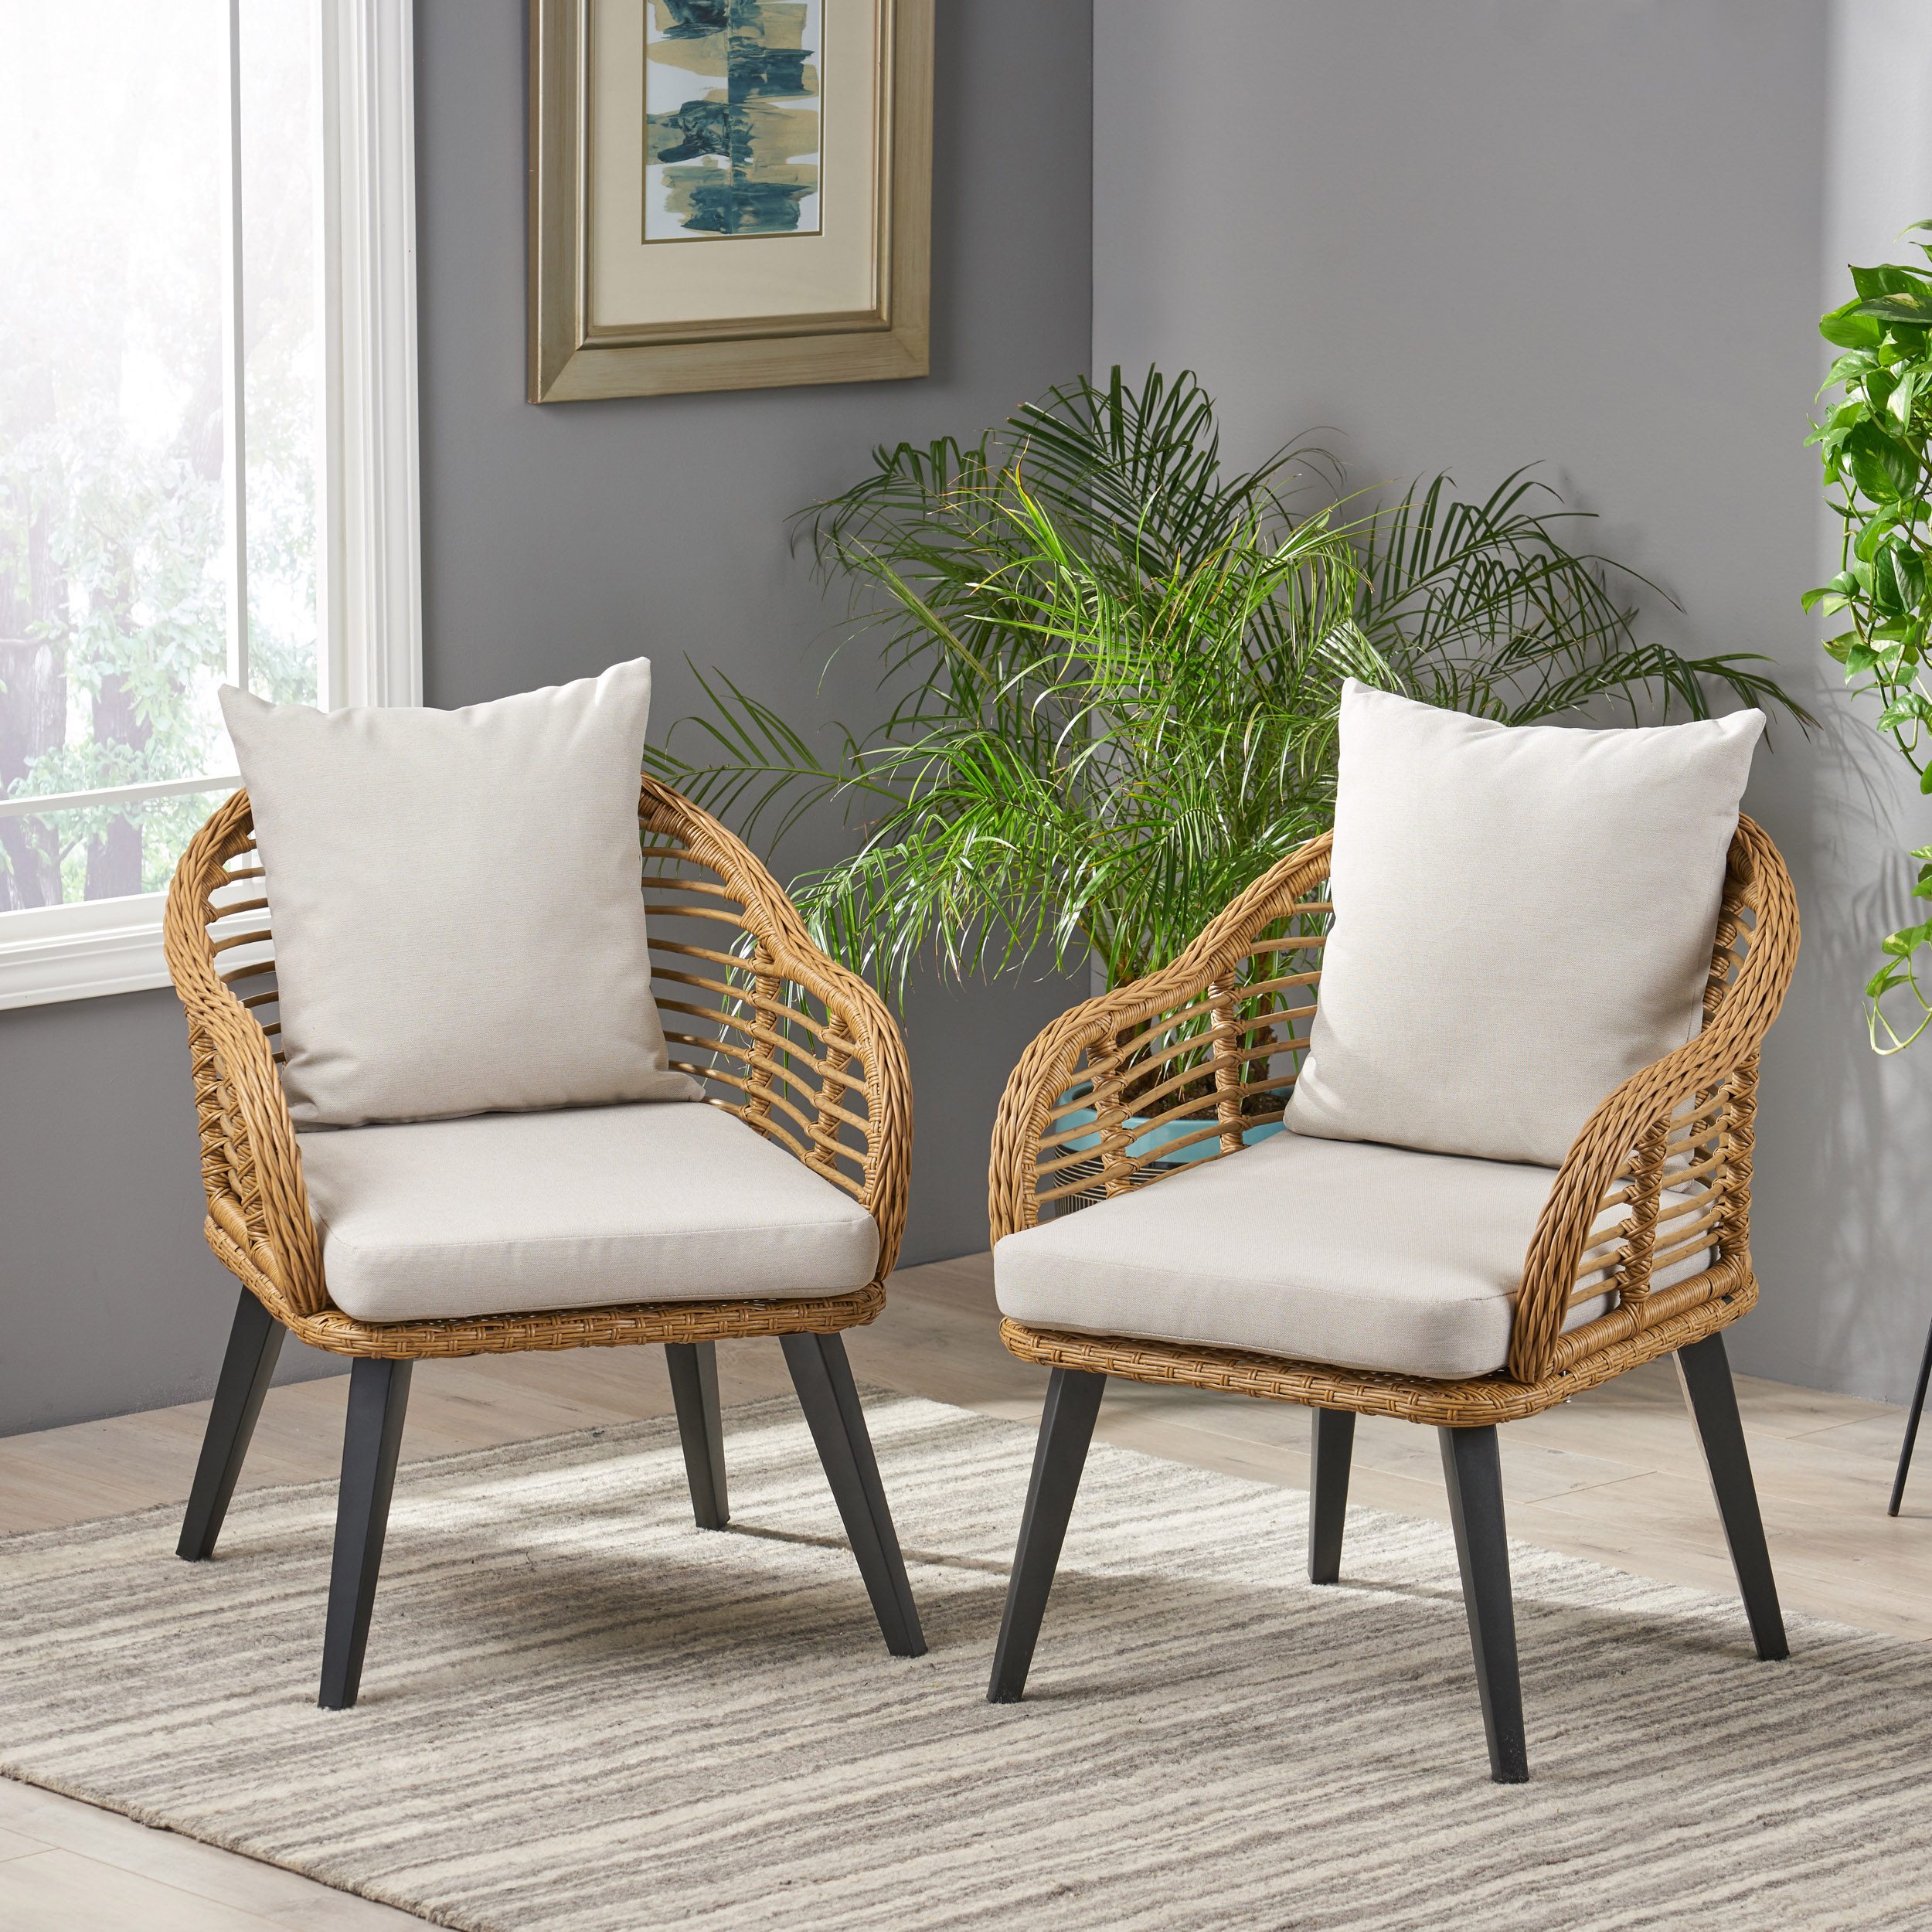 Details About Becky Indoor Wicker Club Chairs With Cushions Set Of 2